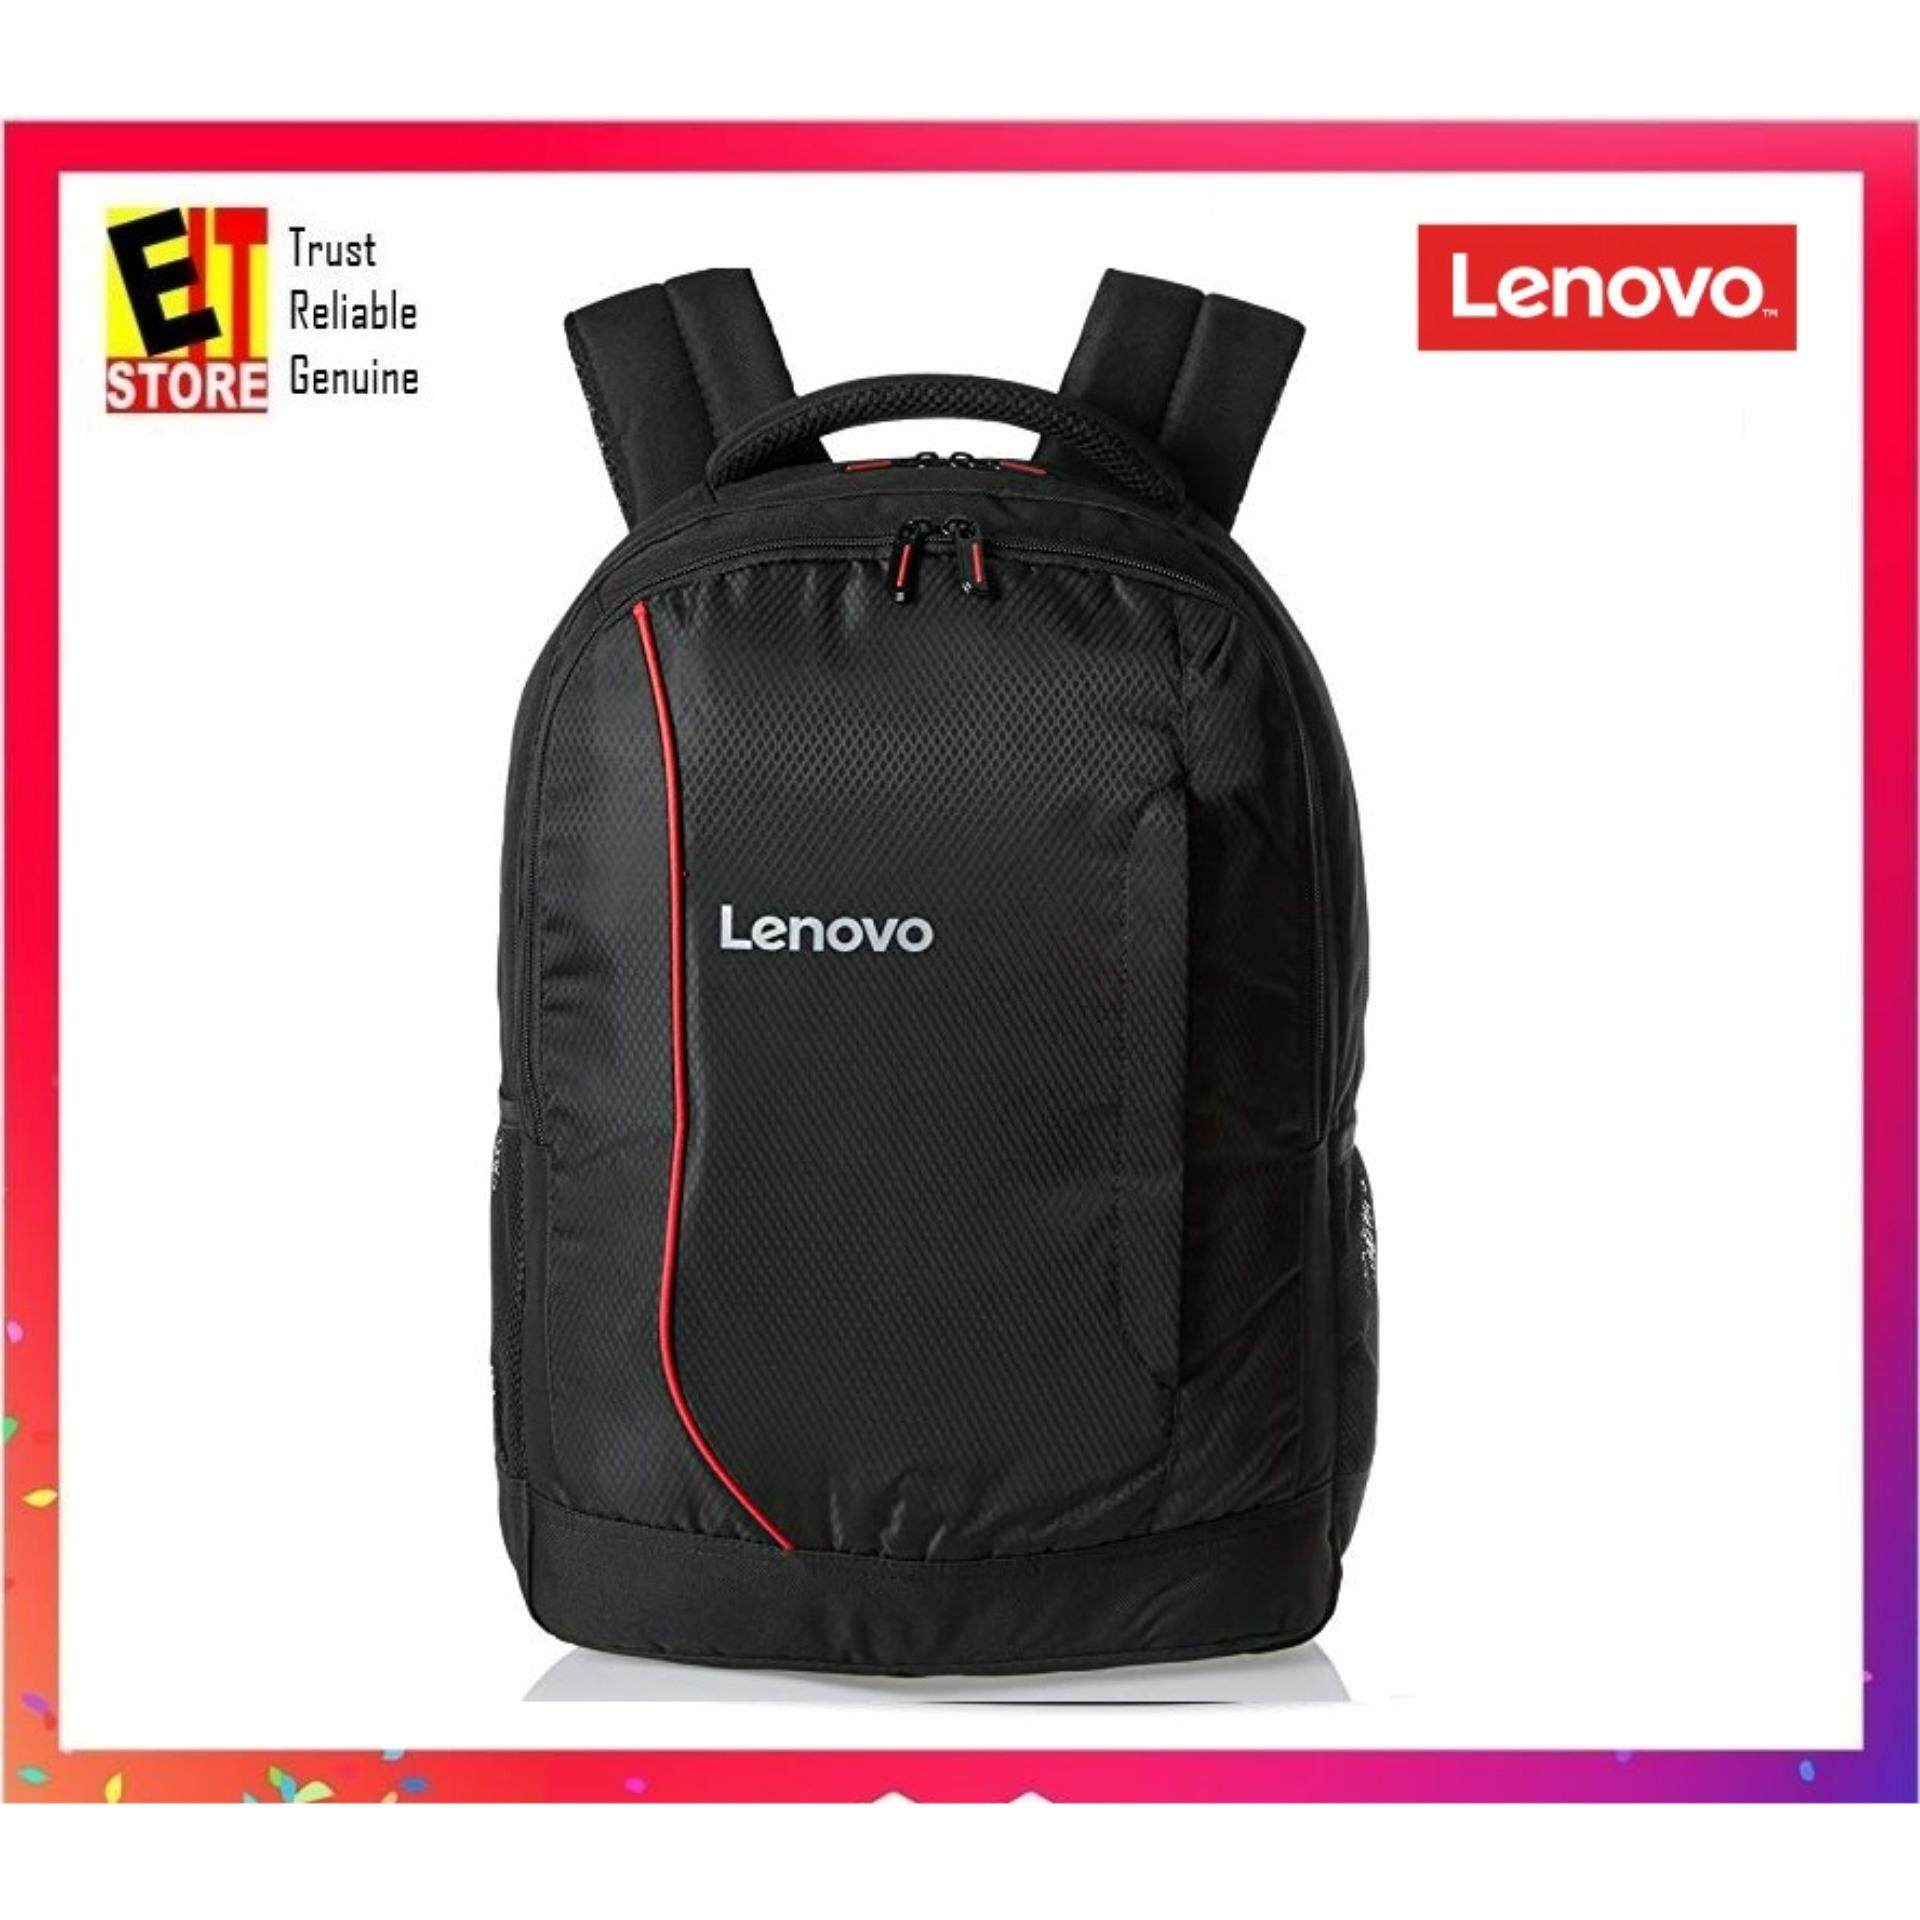 Lenovo 15.6 Backpack - B3055 By Eit Store.